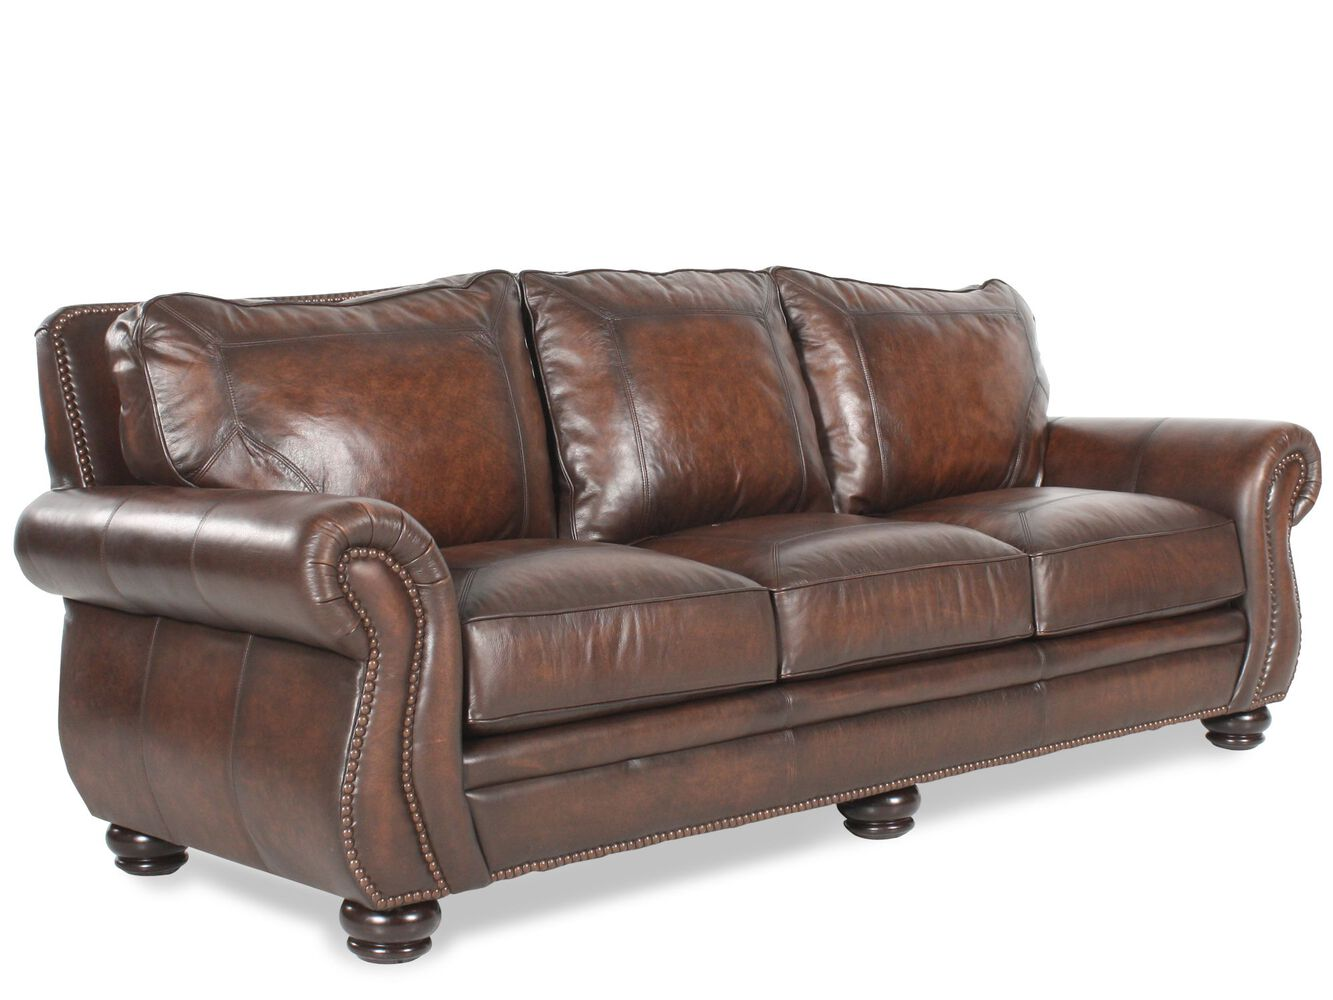 Bernhardt leather sofa reviews furniture bernhardt leather for Bernhardt furniture